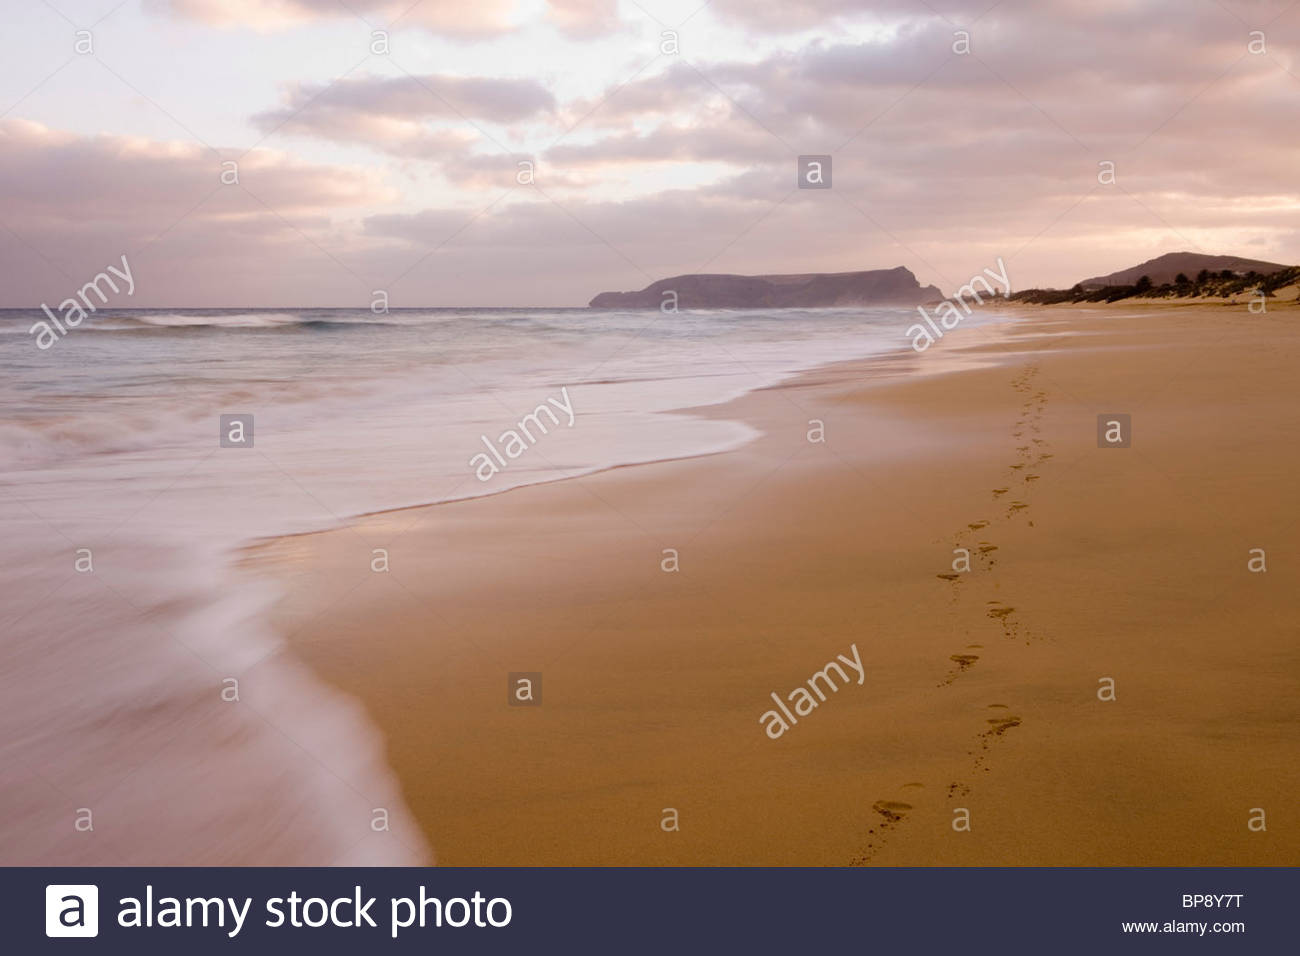 Footprints on Porto Santo Beach at Sunset, Vila Baleira, Porto Santo, near Madeira, Portugal - Stock Image